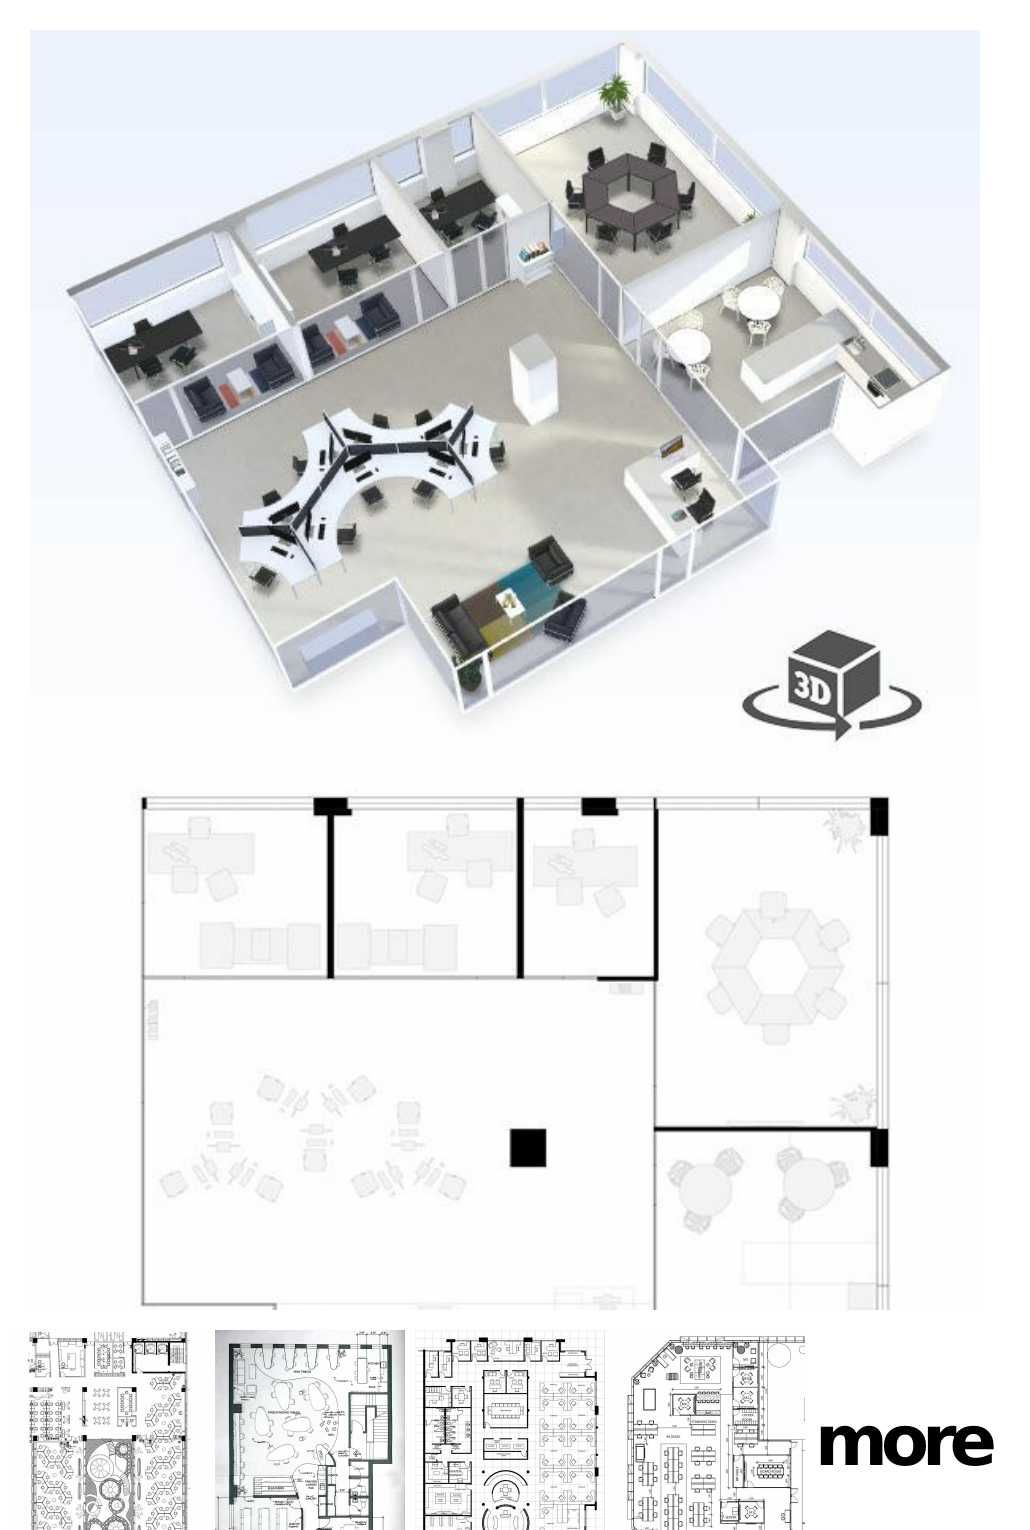 40 Gorgeous Industrial Table Design Ideas For Home Office Office Floor Plan Office Layout Plan Commercial And Office Architecture